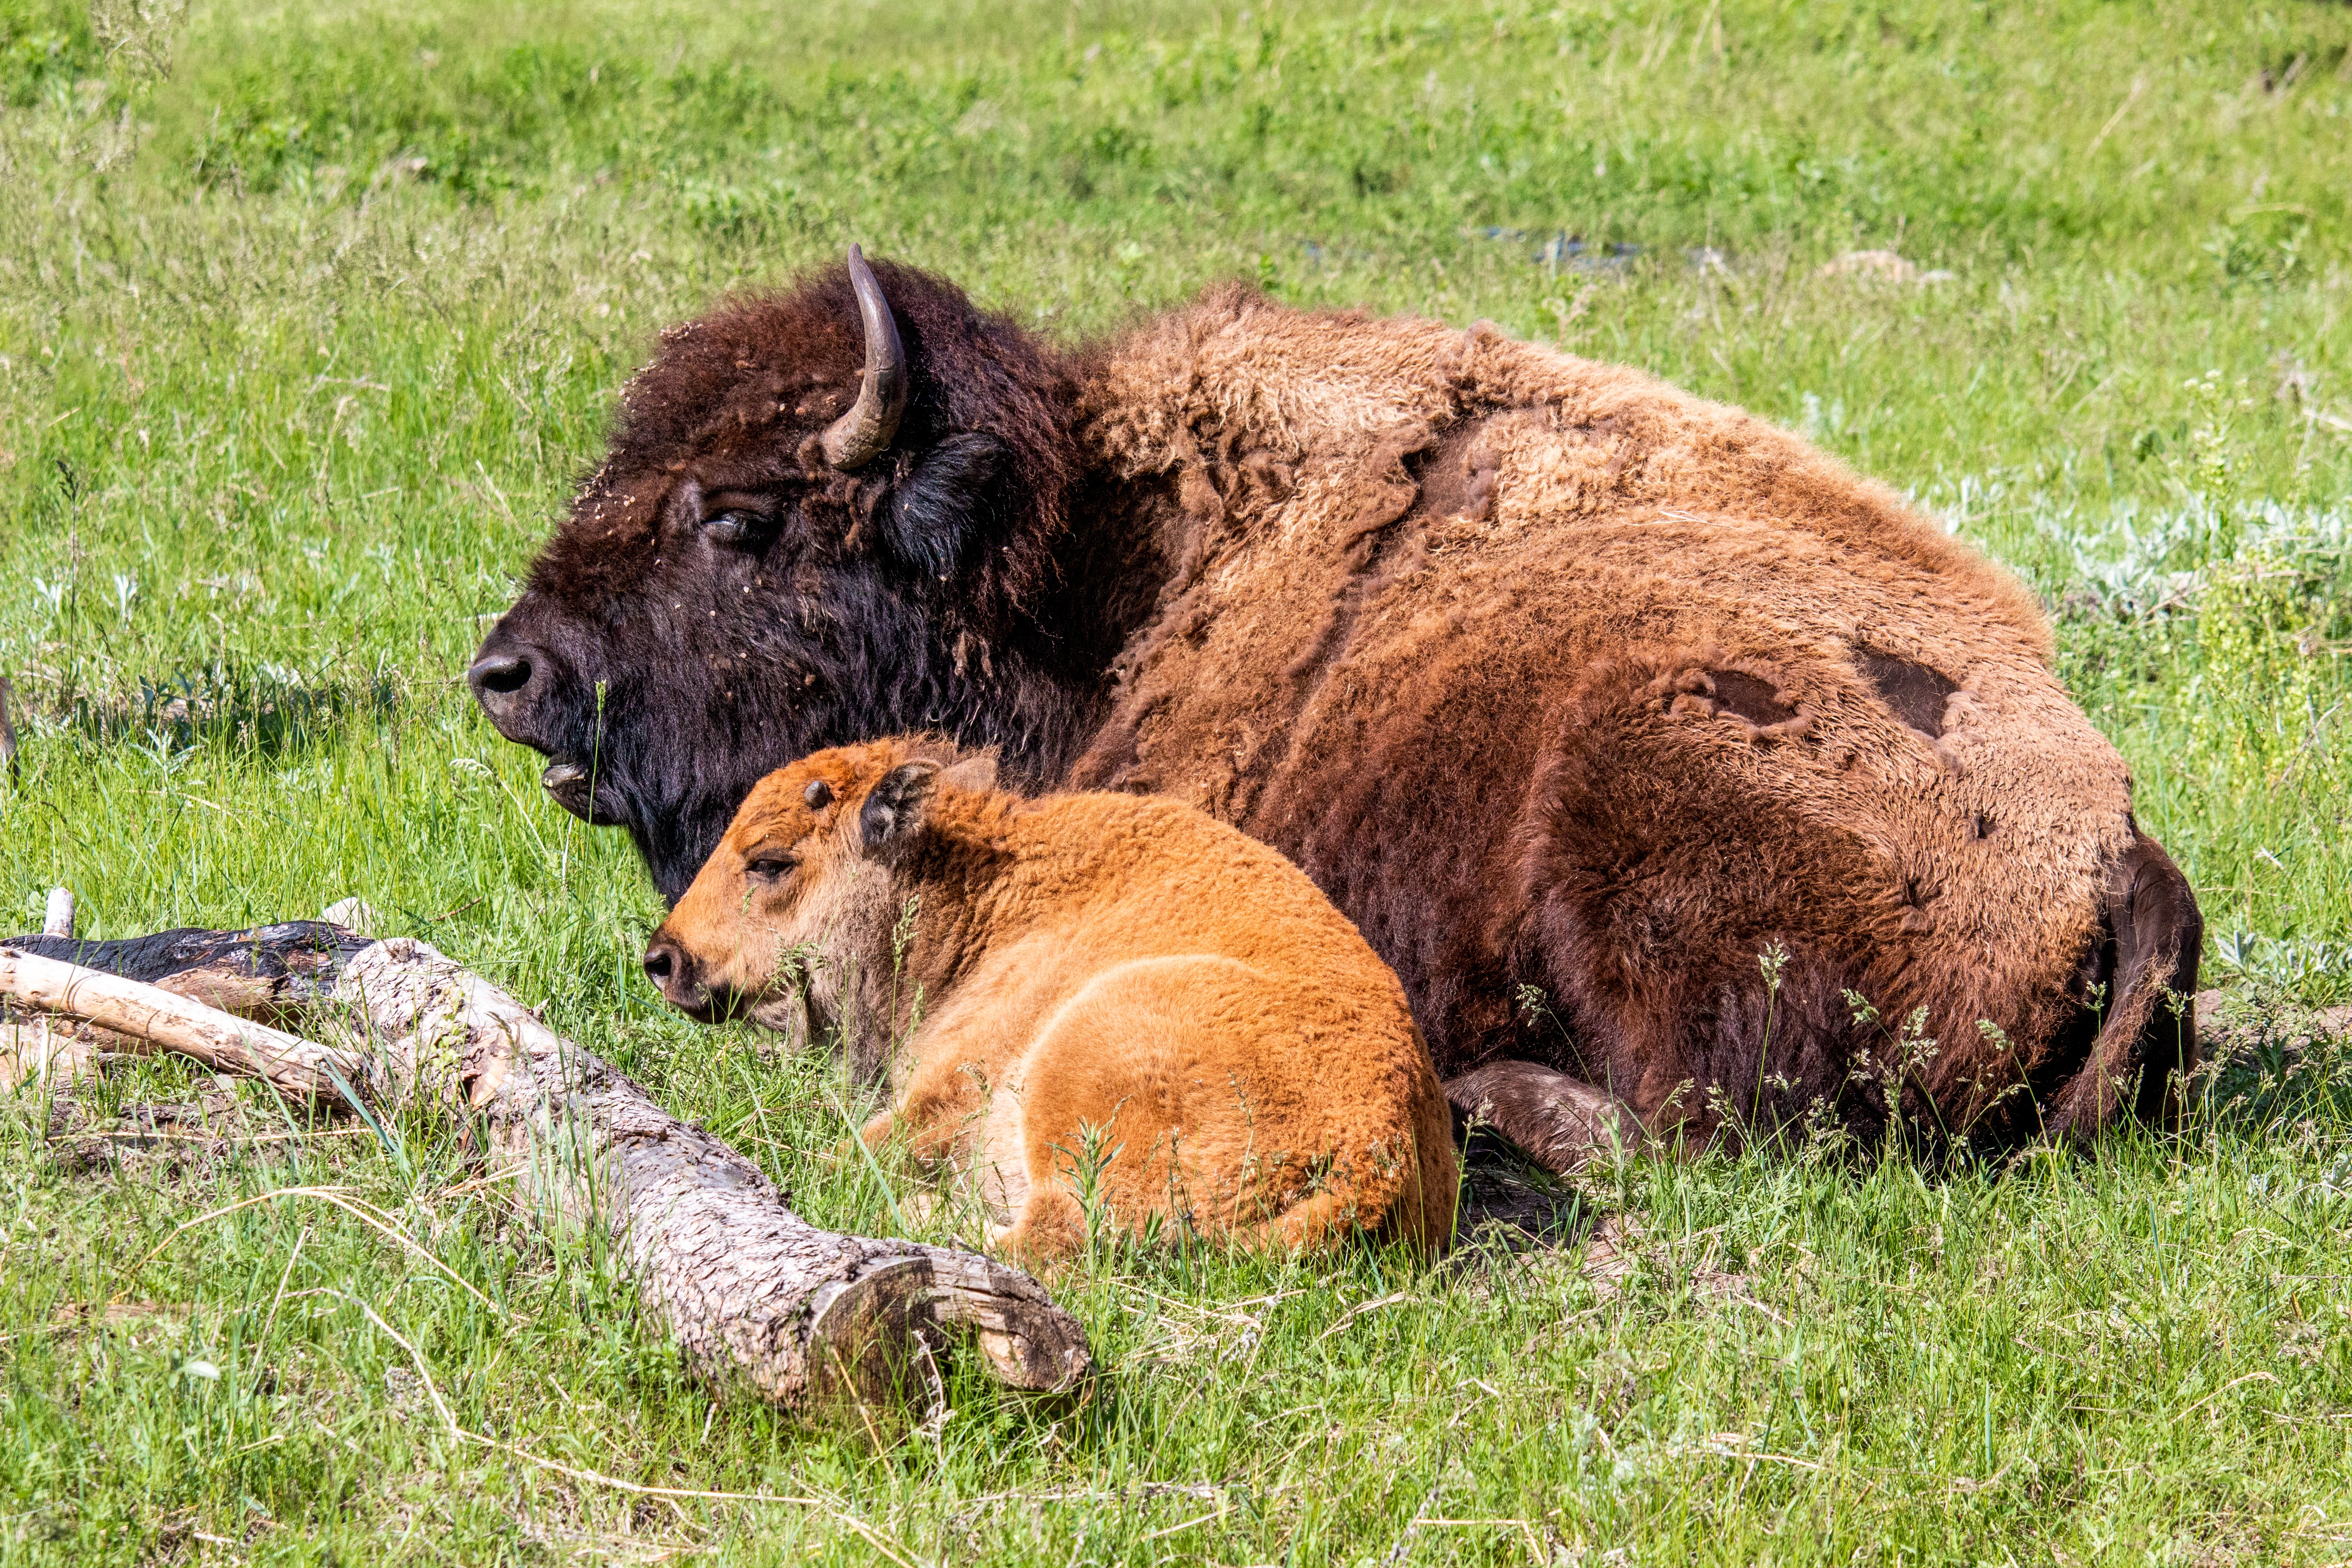 An adult bison lies on the ground with baby.